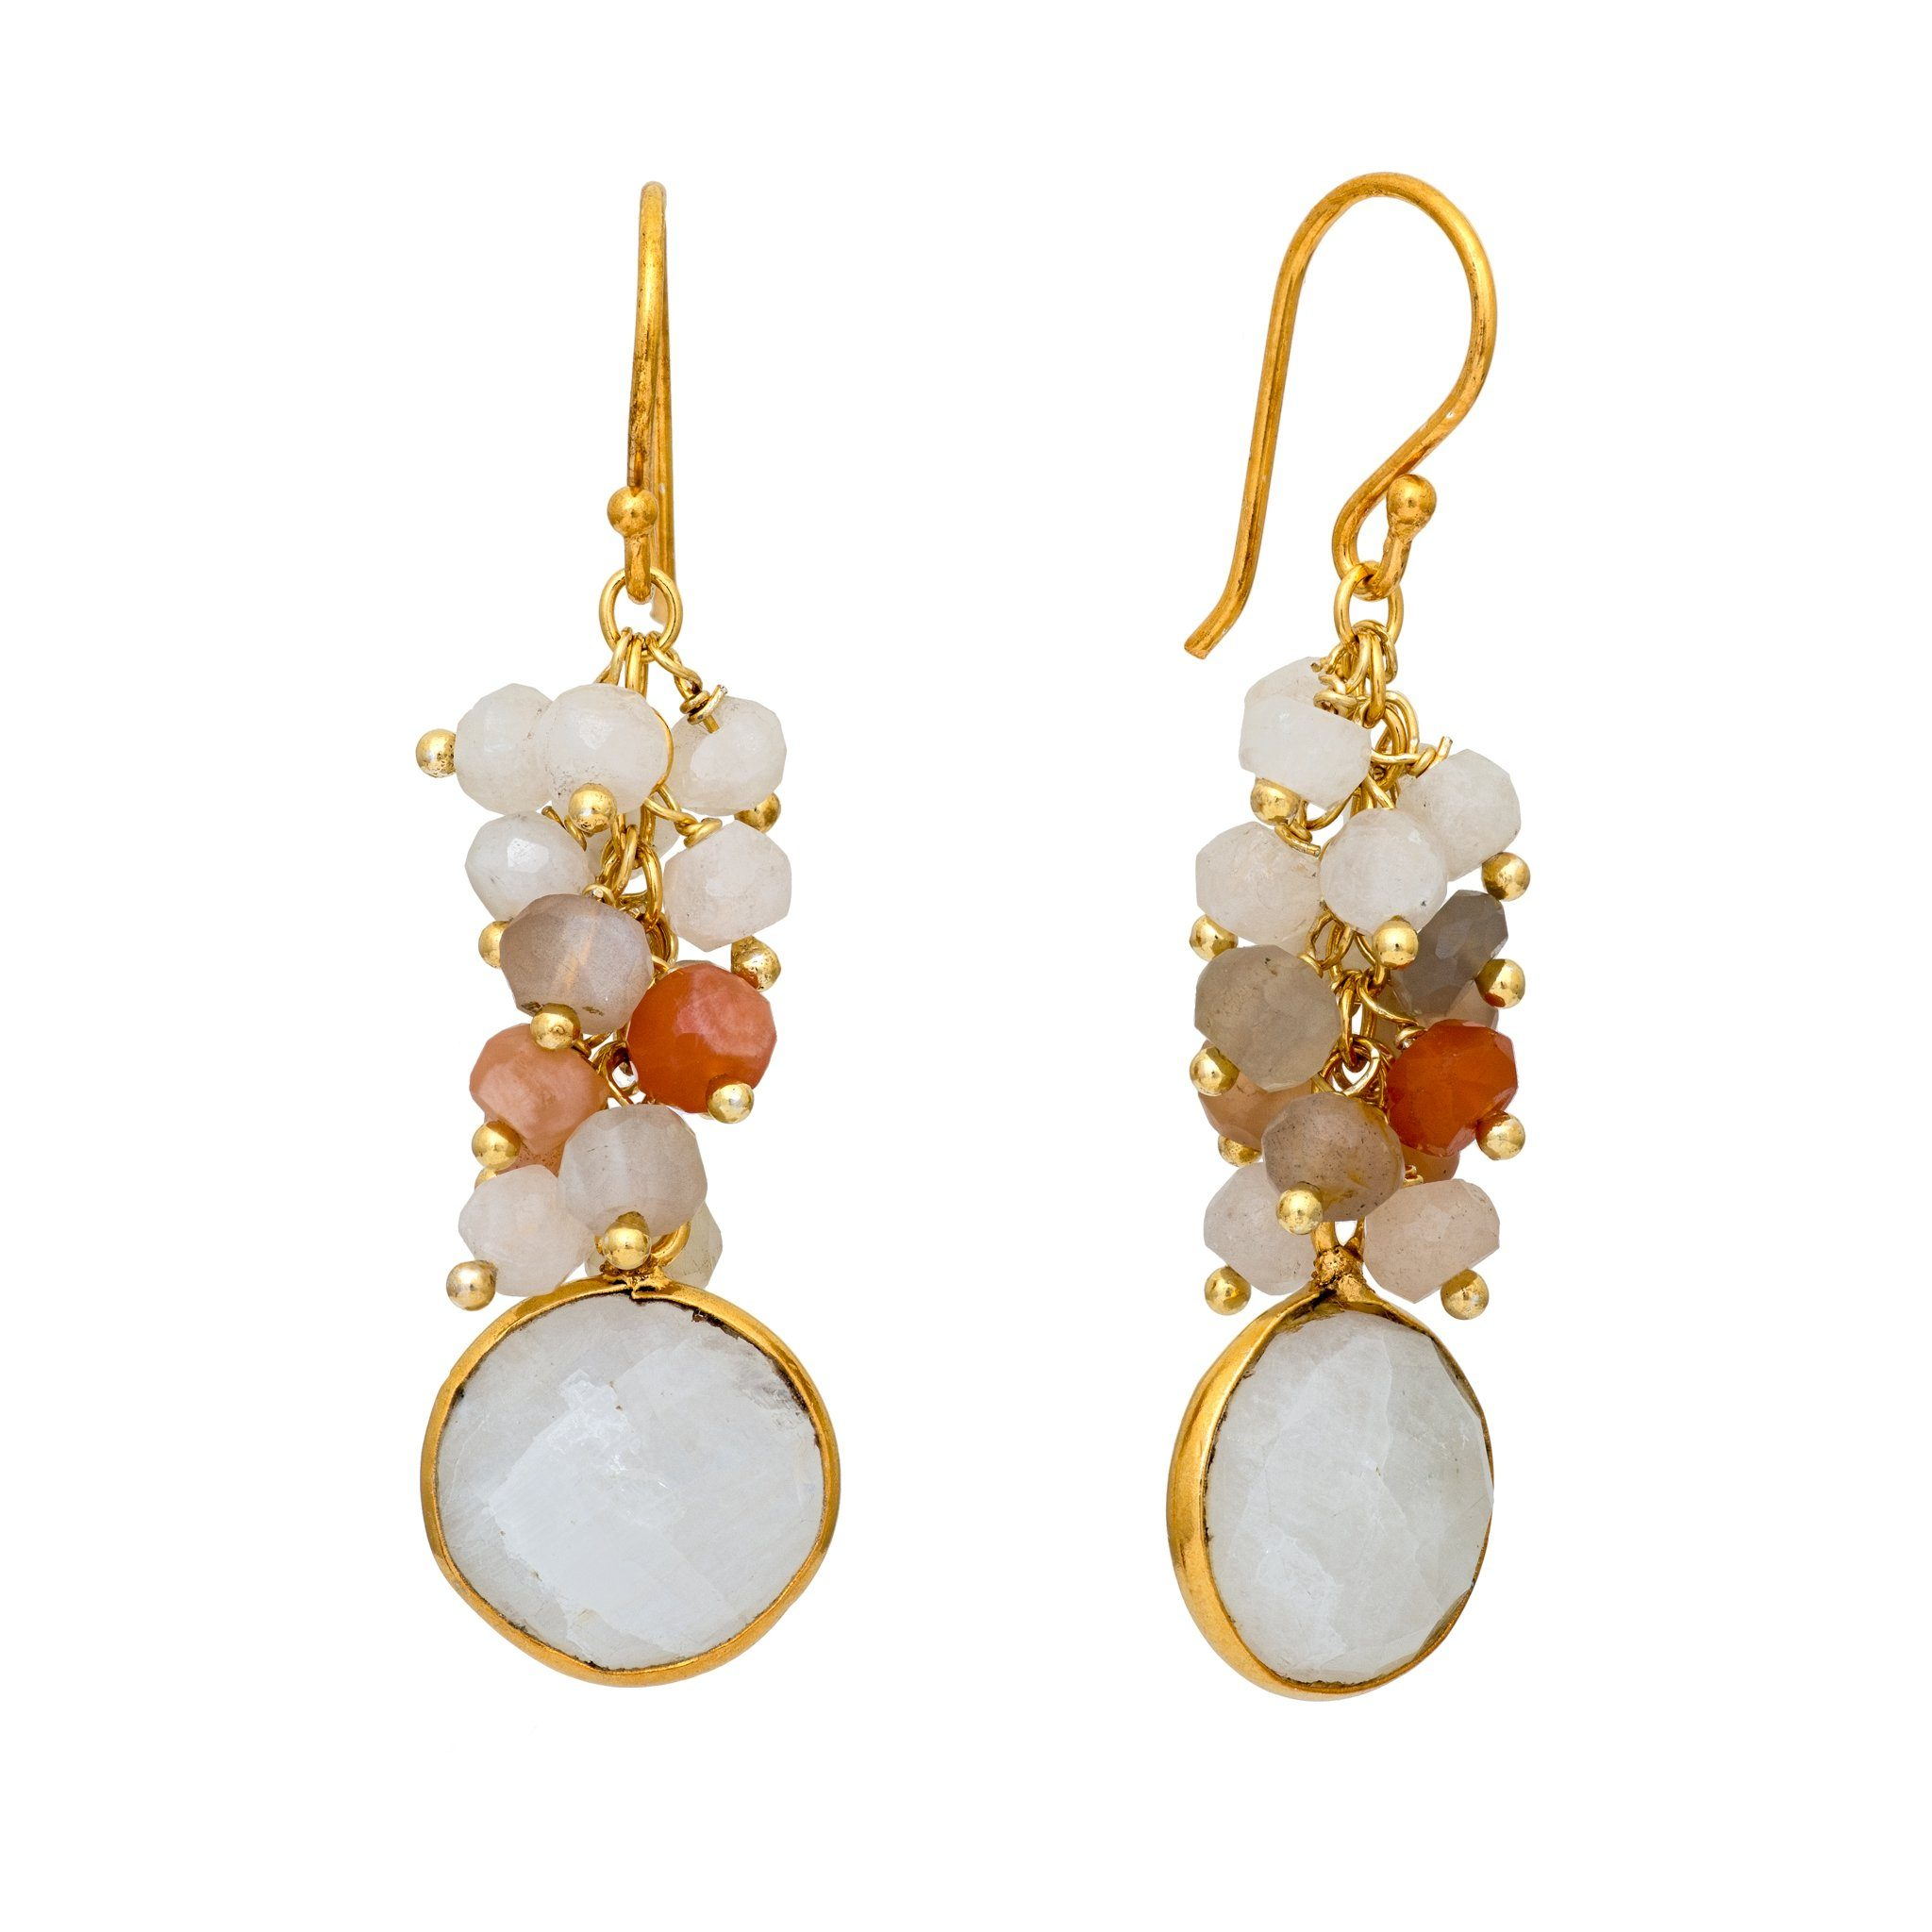 KAI mix of moonstone cluster earrings